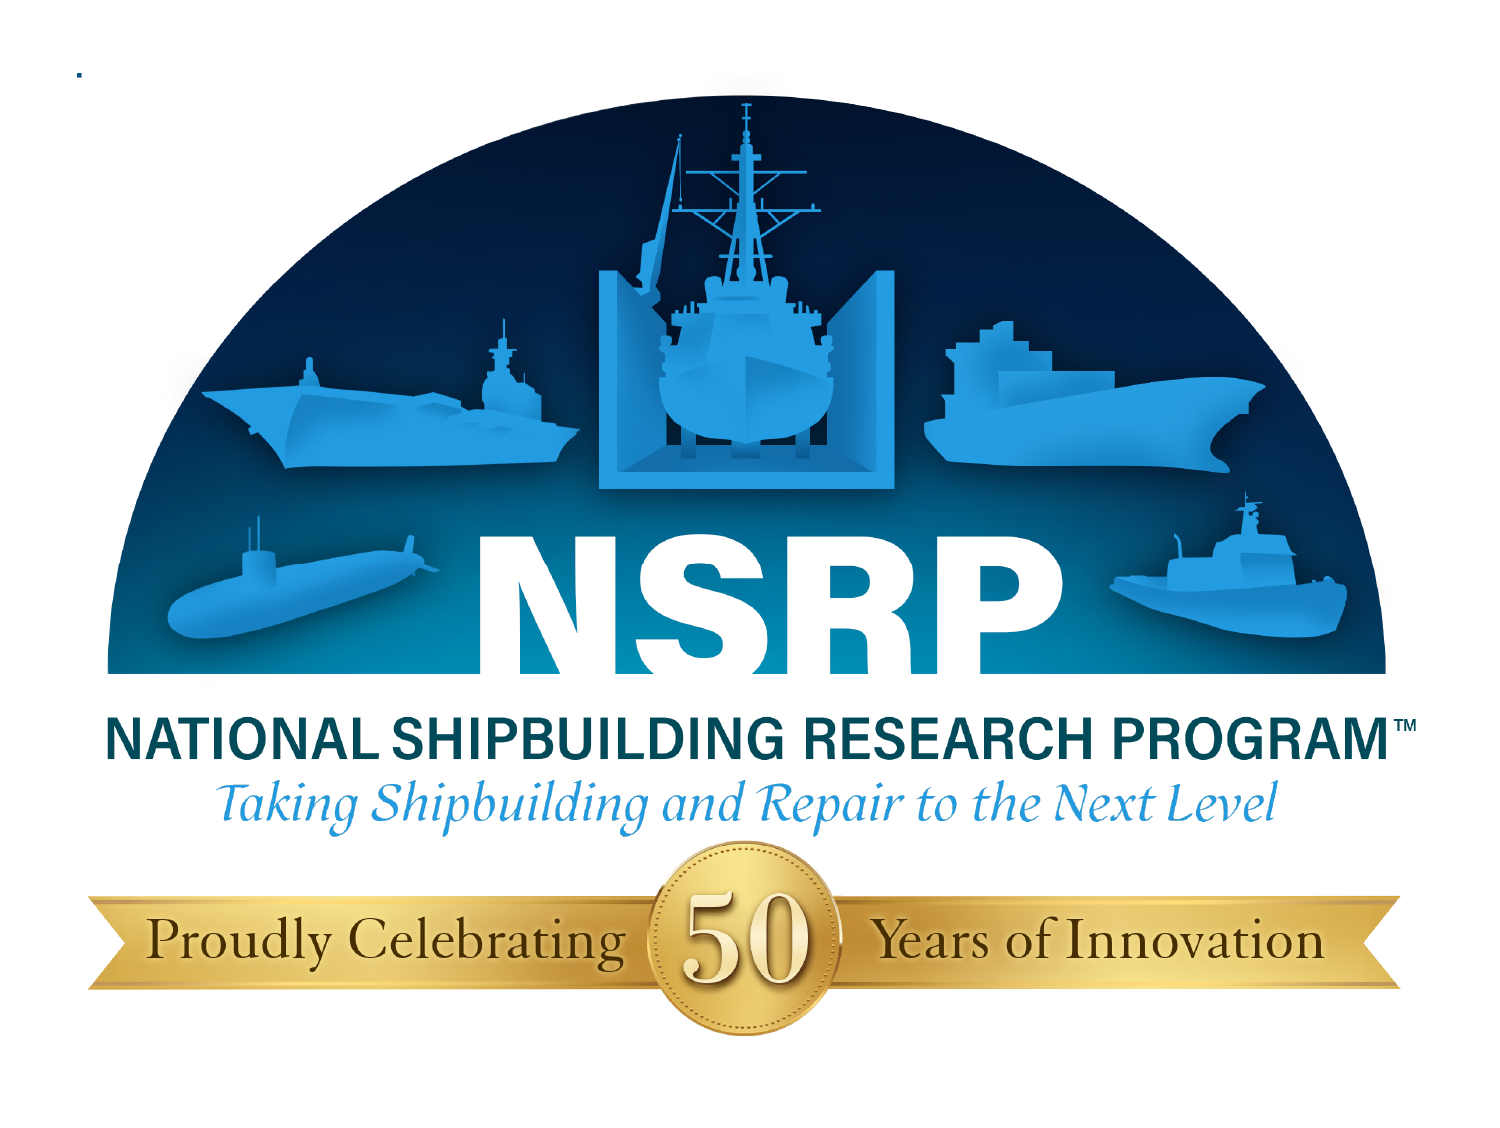 National Shipbuilding Research Program (NSRP)